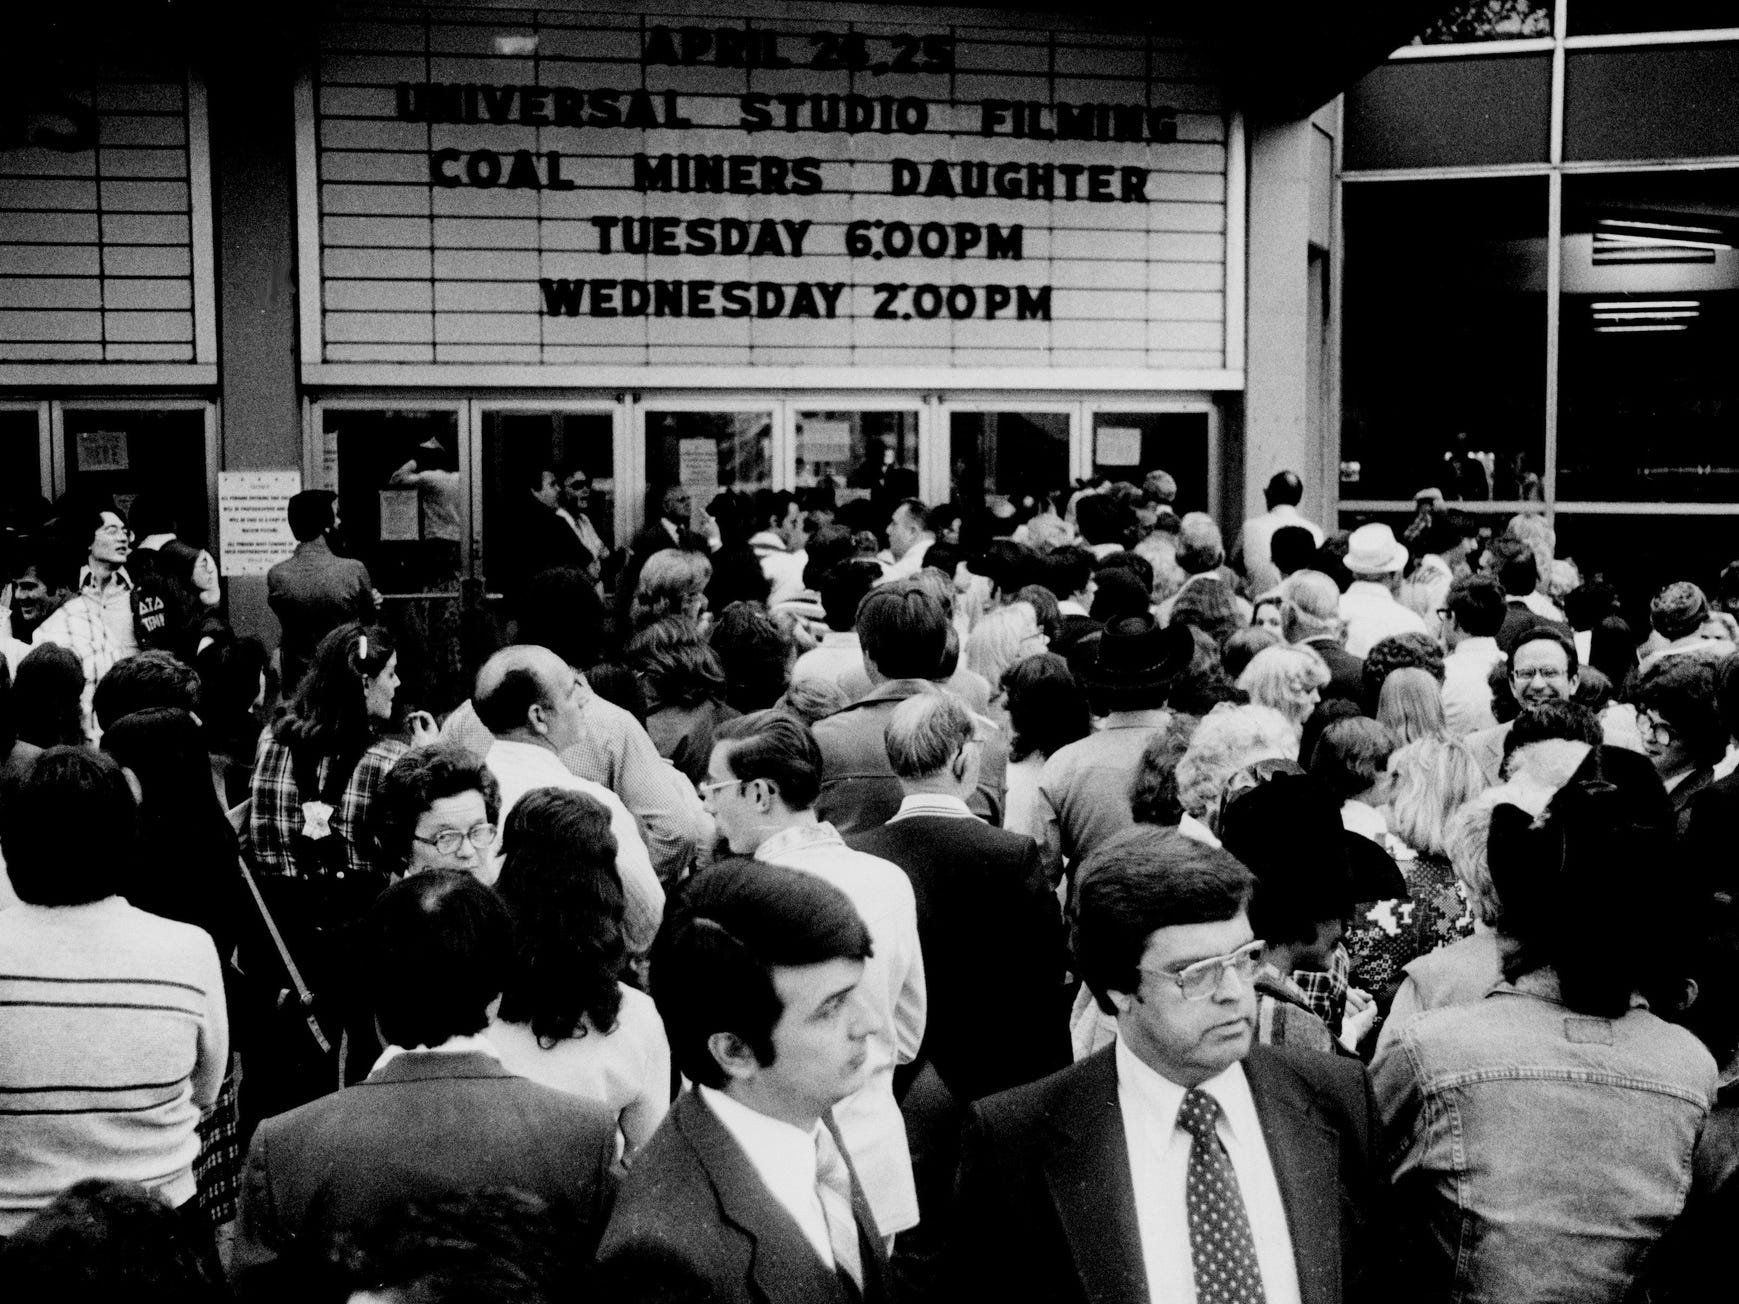 """Thousands of people crowded into Municipal Auditorium as movie extras for the filming of one of the biggest scenes in """"Coal Miner's Daughter"""" in Nashville on April 24, 1979."""